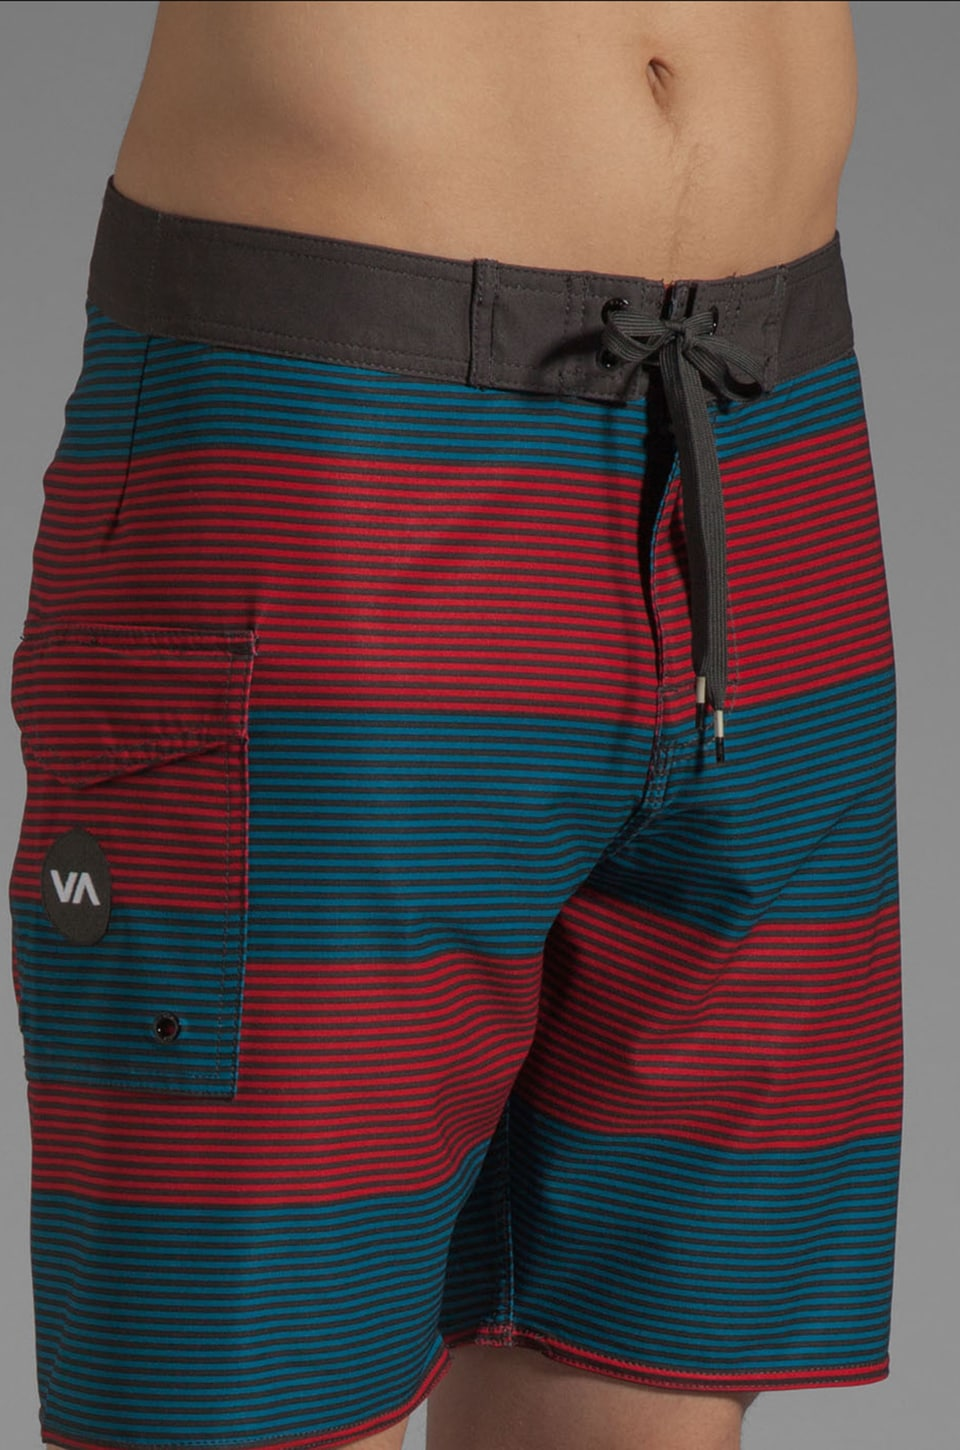 "RVCA Civil Stripe 18"" Trunk in Lava"